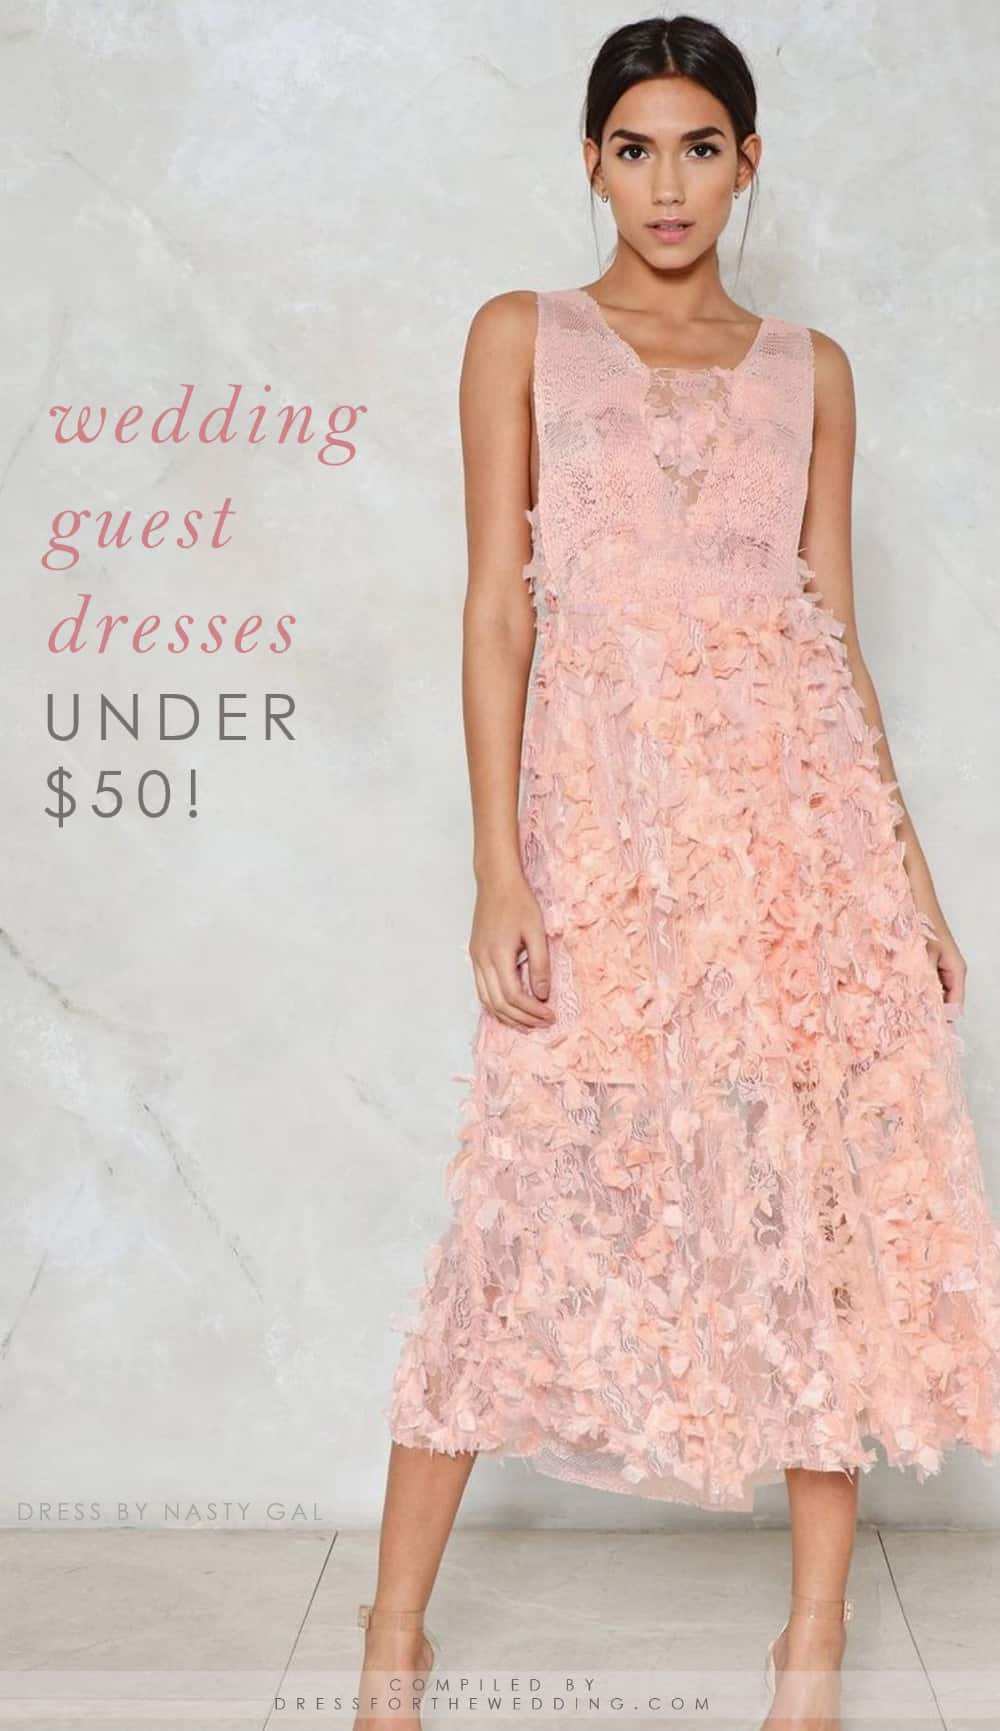 Where to buy a wedding guest dress